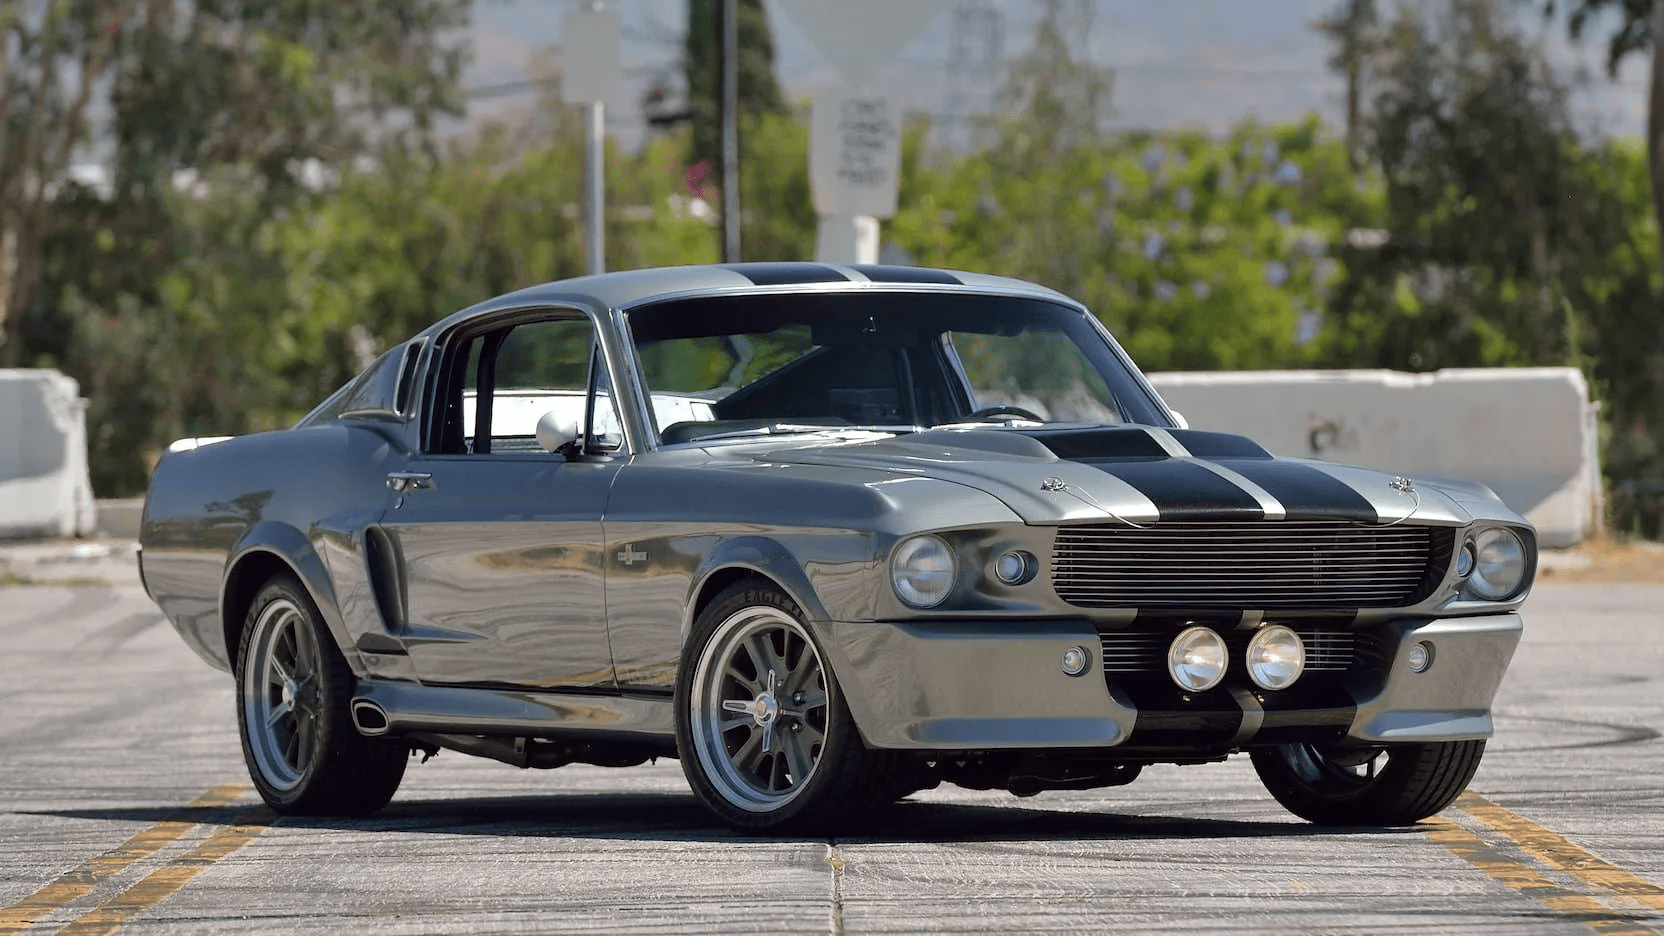 1967 Ford Mustang Shelby GT500 Eleanor - Namaste Car